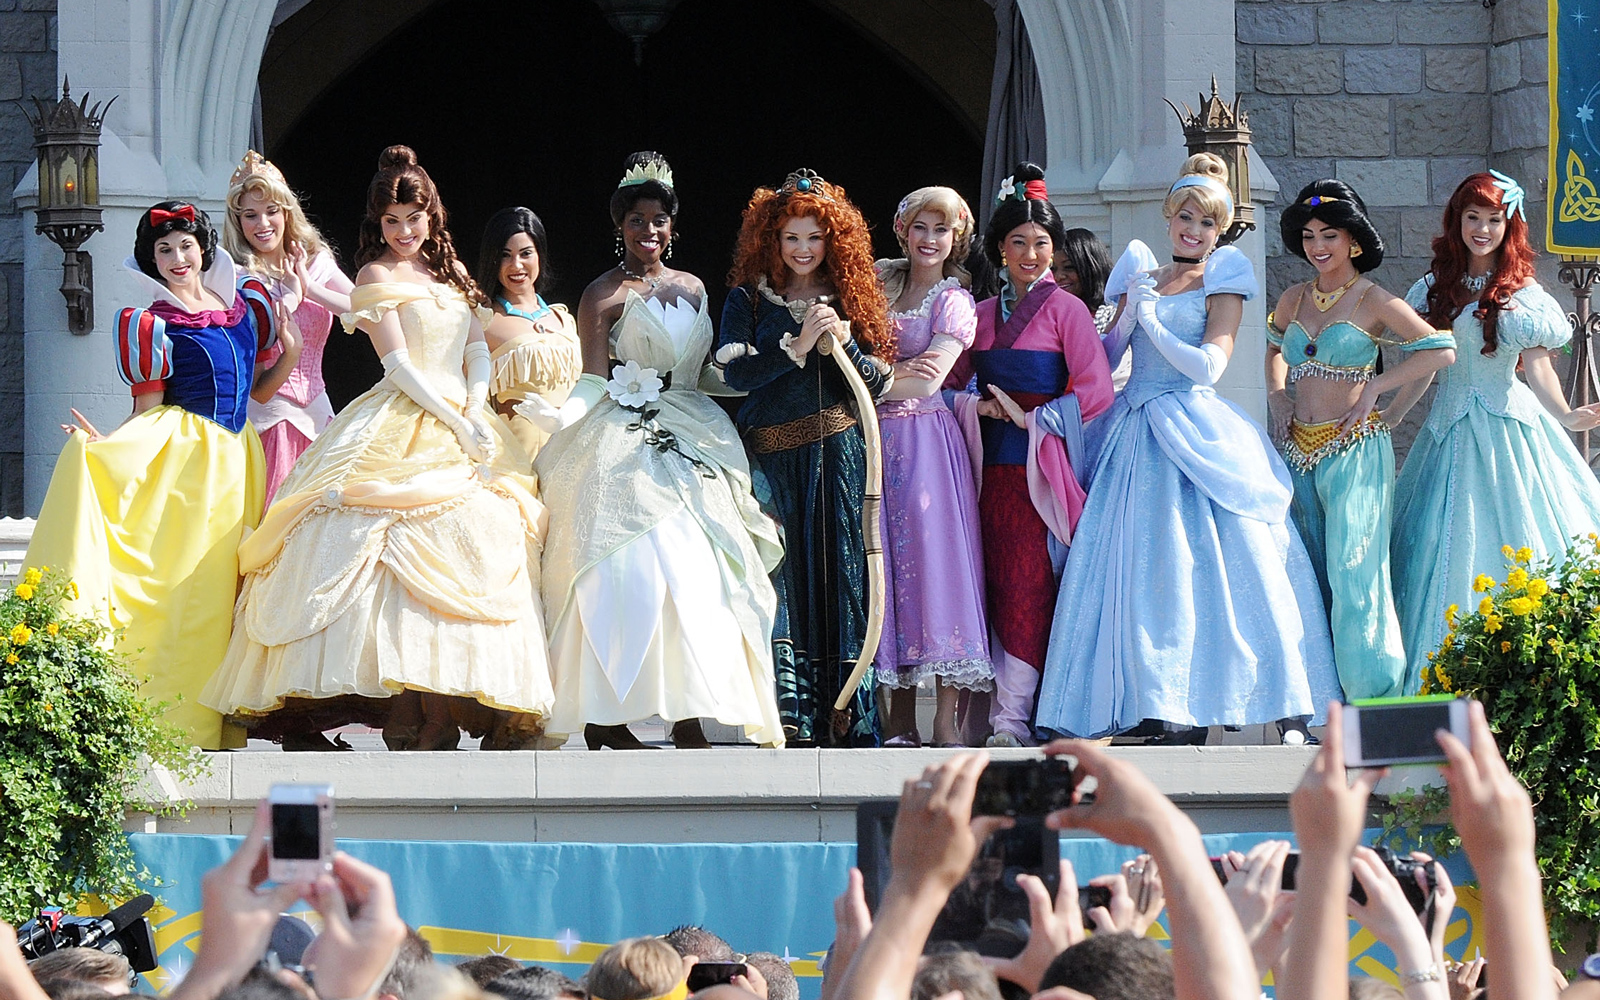 A Family in the U.K. Is Offering $53,000 a Year to a Part-time Nanny Willing to Dress Like a Disney Princess Every Day